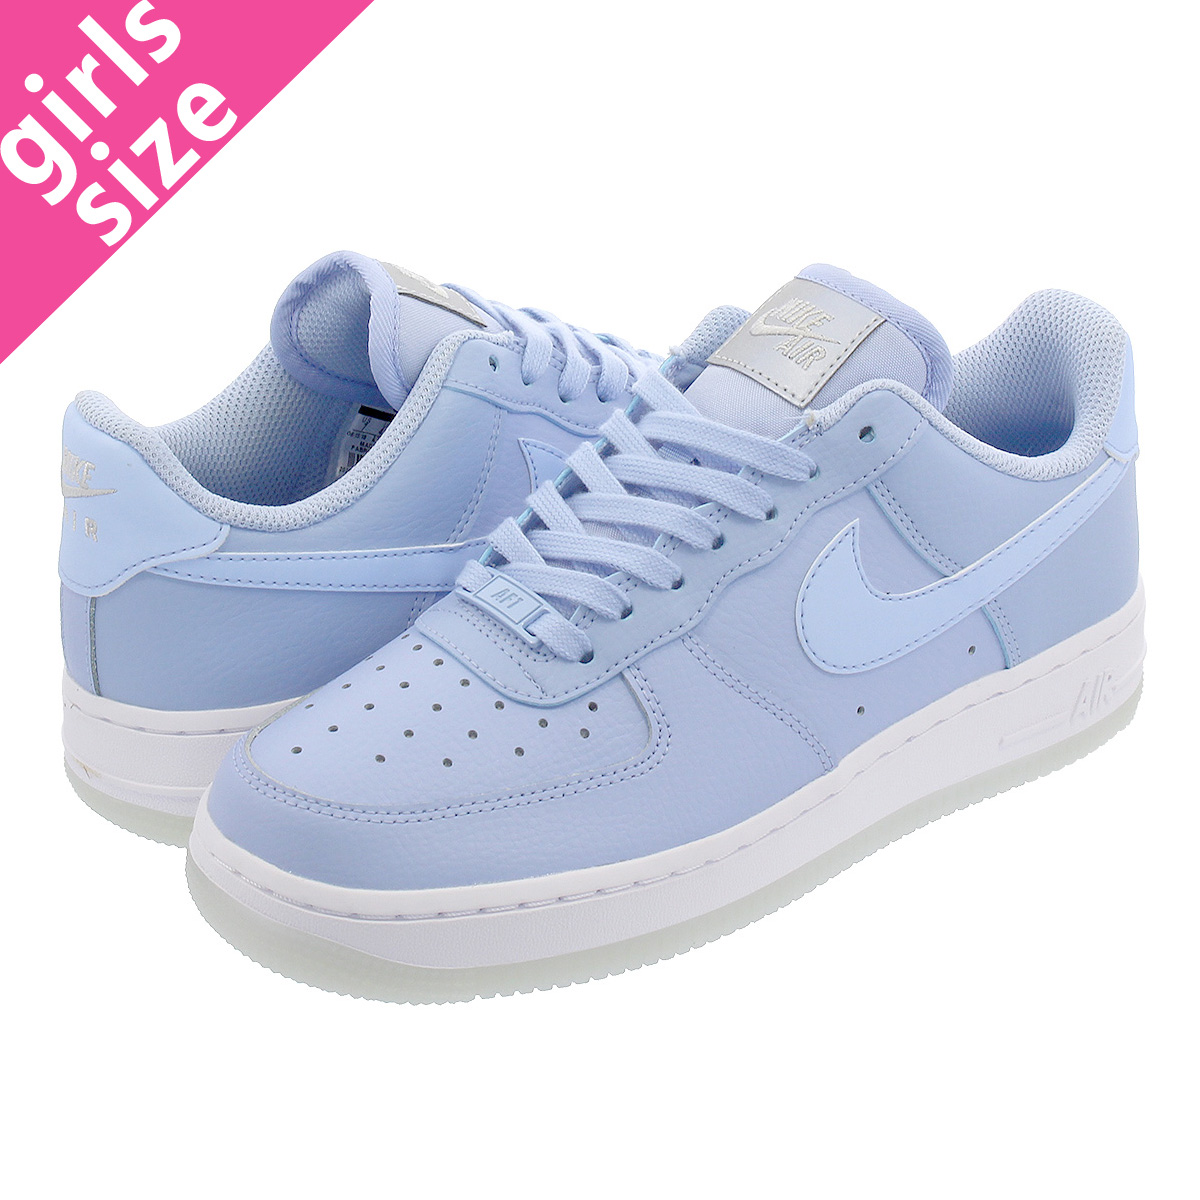 438a3565d4e1 NIKE WMNS AIR FORCE 1  07 ESSENTIAL Nike women air force 1  07 essential  ALUMINUM WHITE METALIC LUSTER ao2132-400